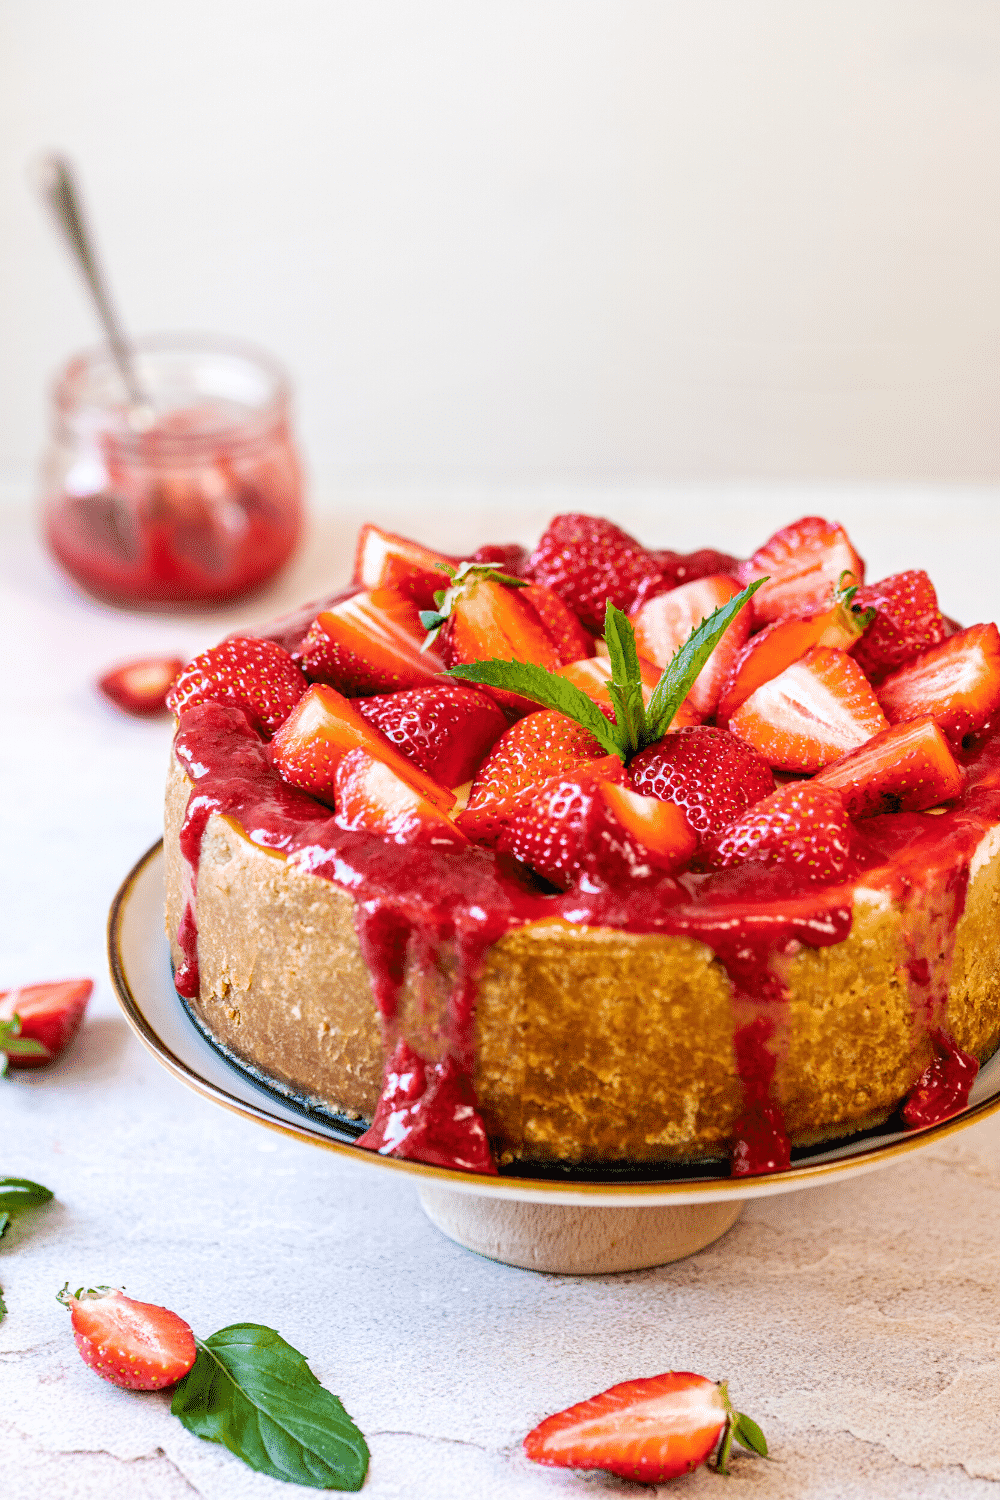 A strawberry cheesecake with sliced strawberries and strawberry sauce on top of it on a serving dish on a white counter.